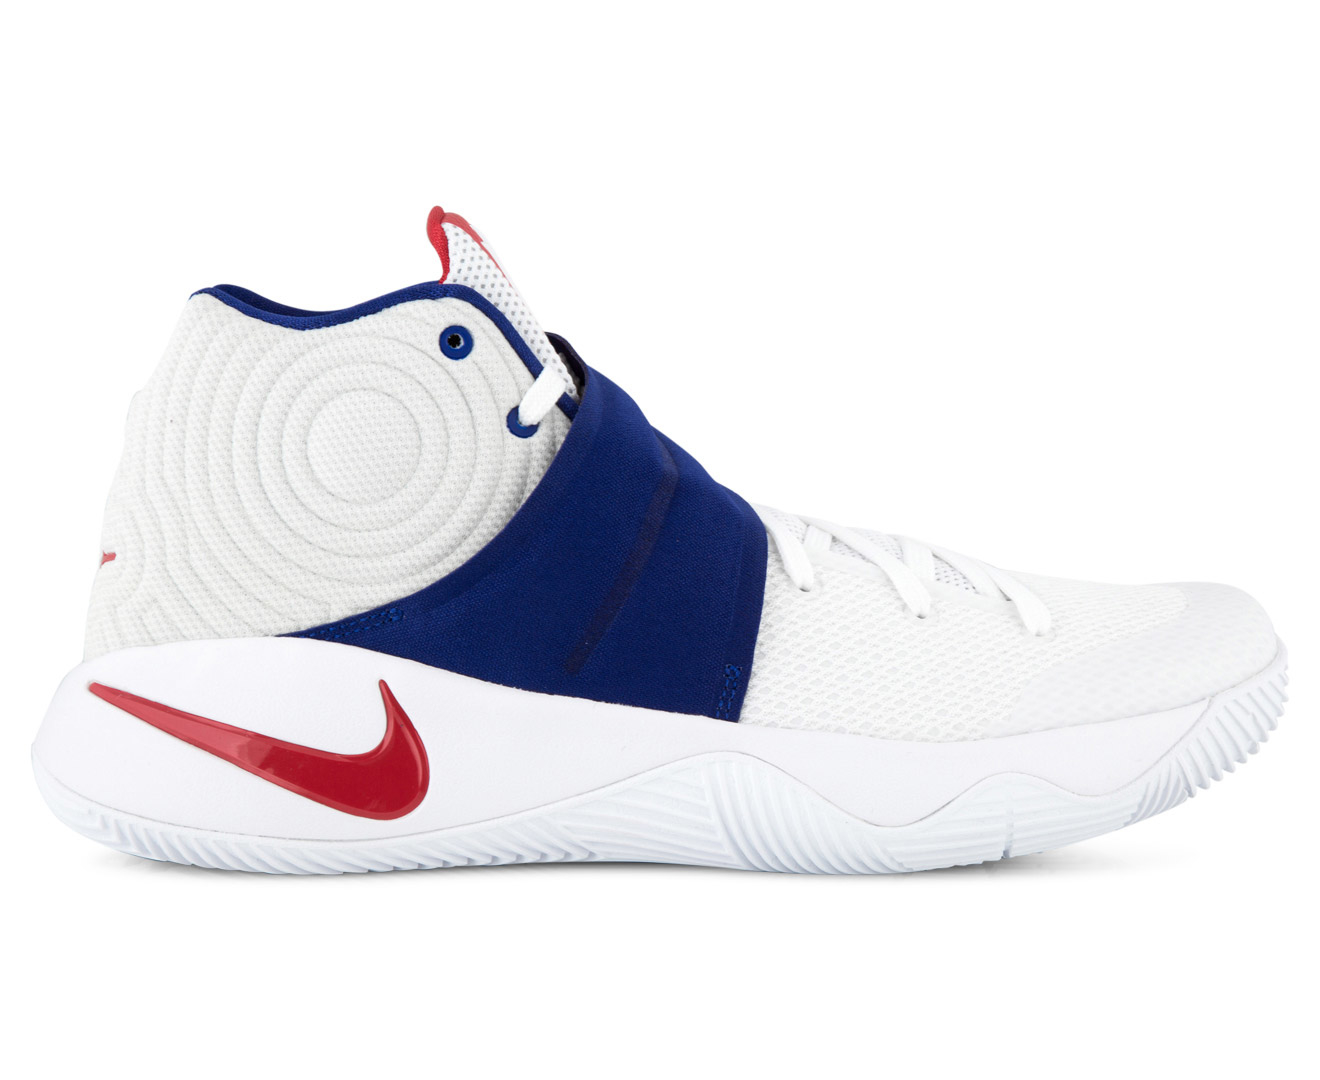 800c0ba8052 Nike Kyrie 2 White Red Extreme Kyrie 2 Red White And Blue